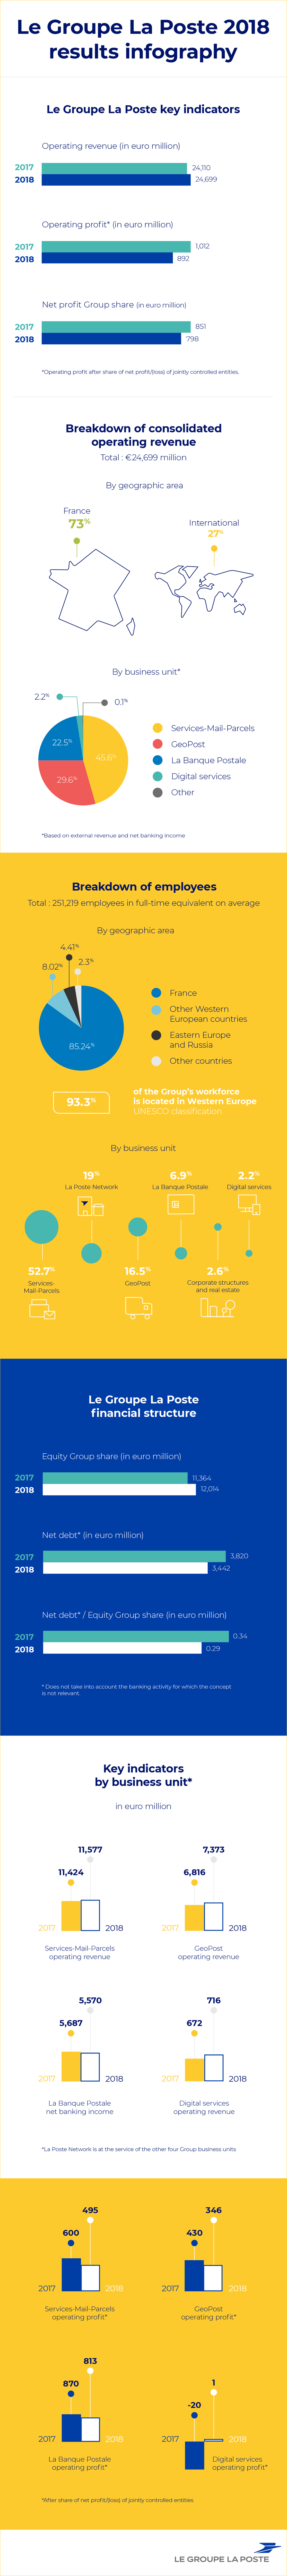 Infographic with the key figures of the Groupe La Poste 2018 results [transcript available for download]